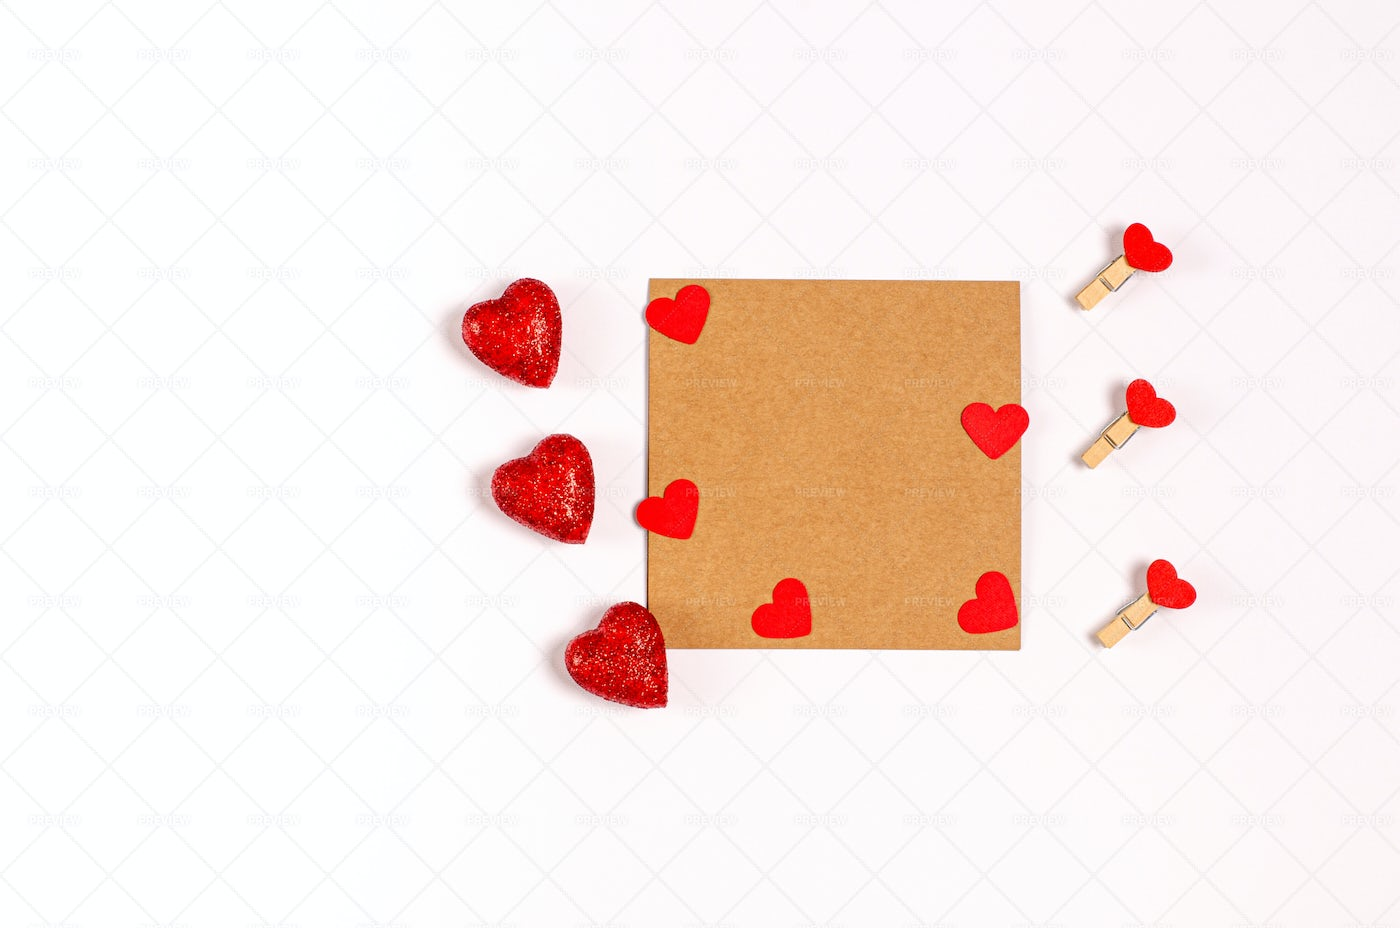 Hearts On A Greeting Card: Stock Photos